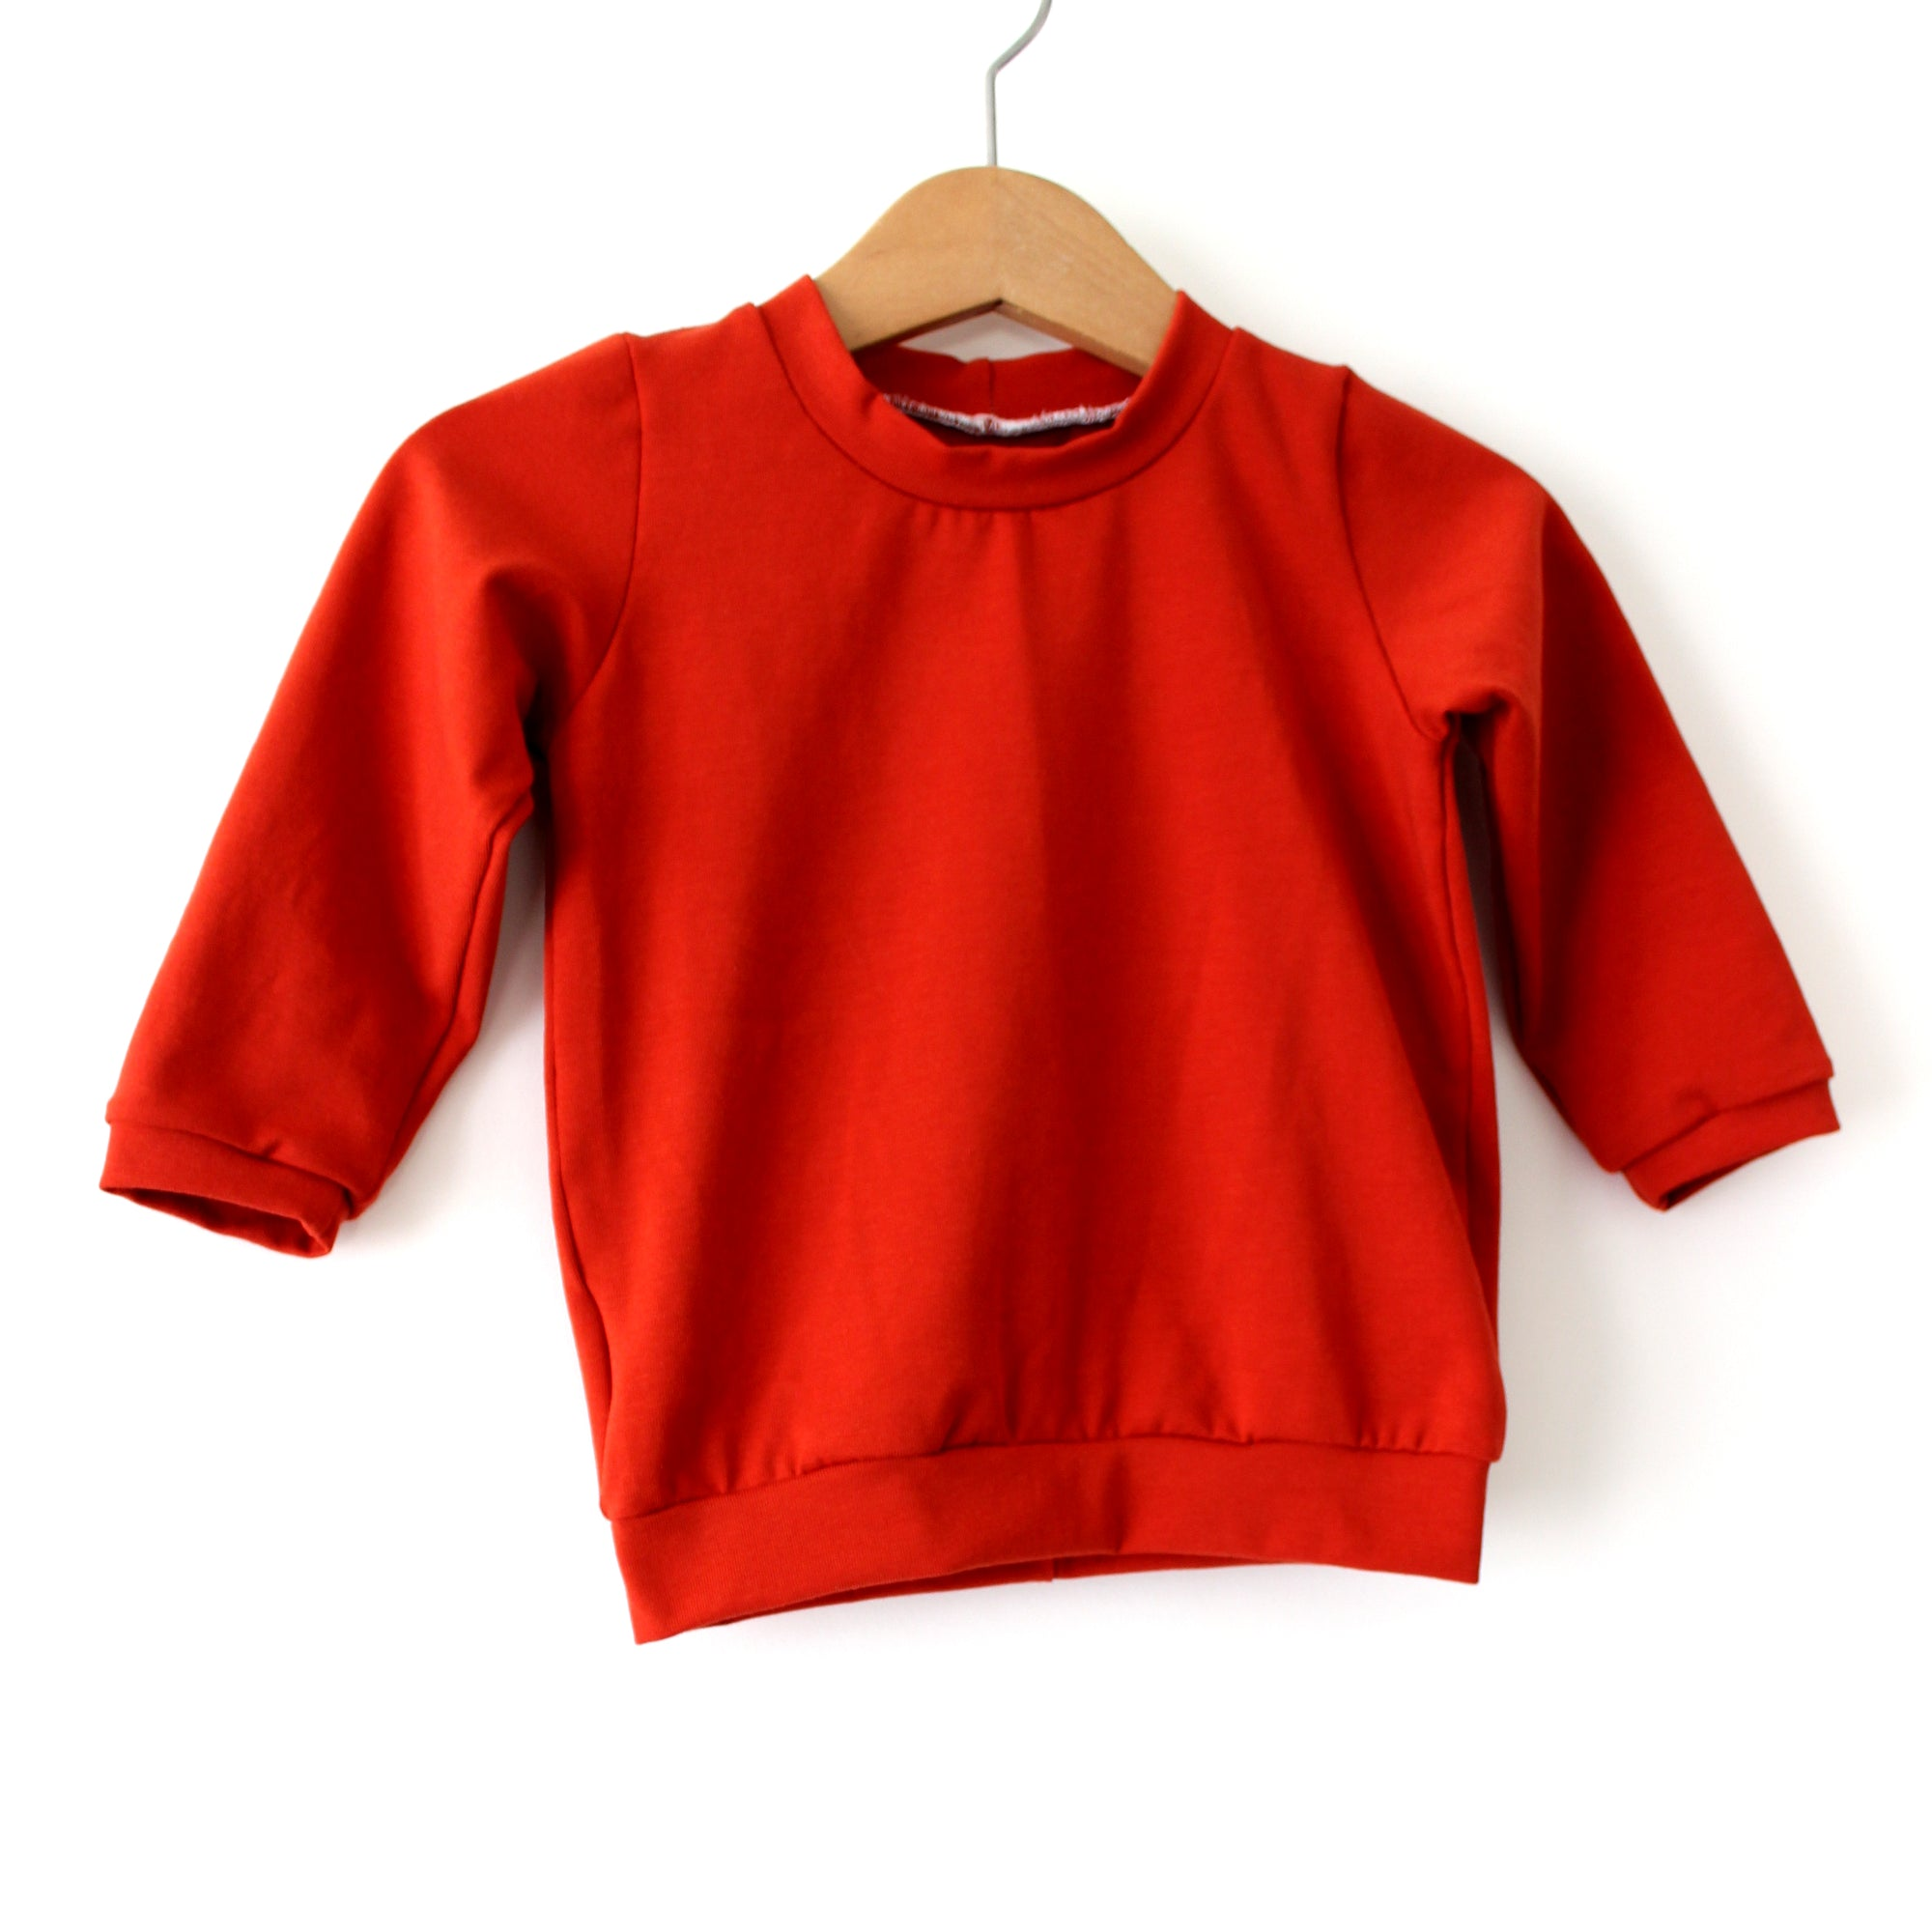 Rust Orange Organic Cotton T-Shirt